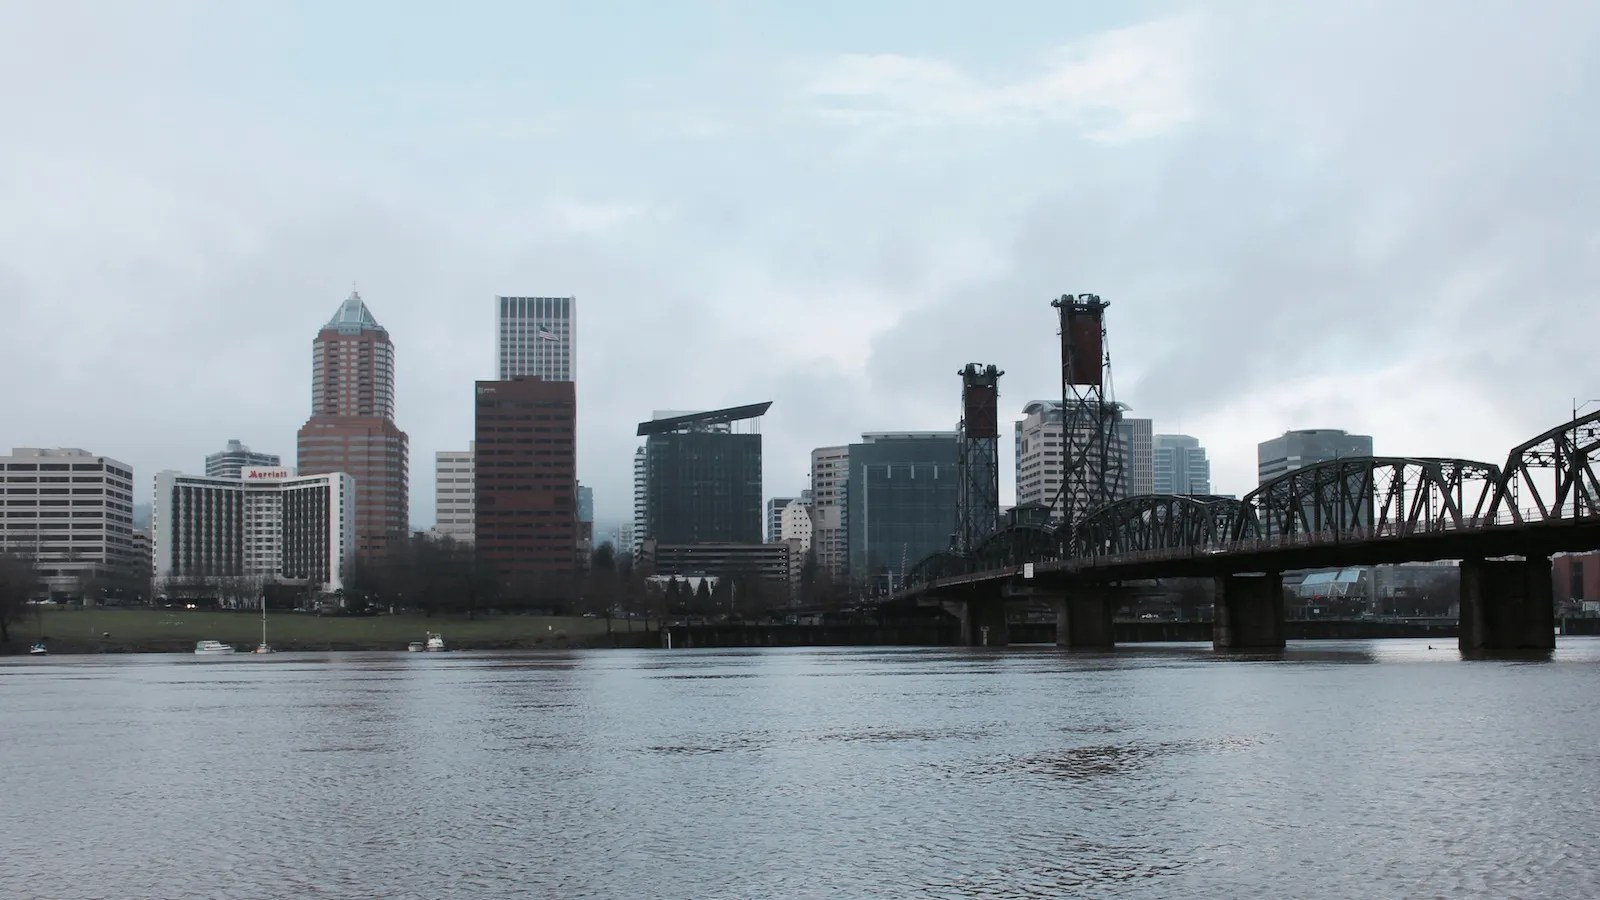 The downtown waterfront of Portland, Oregon